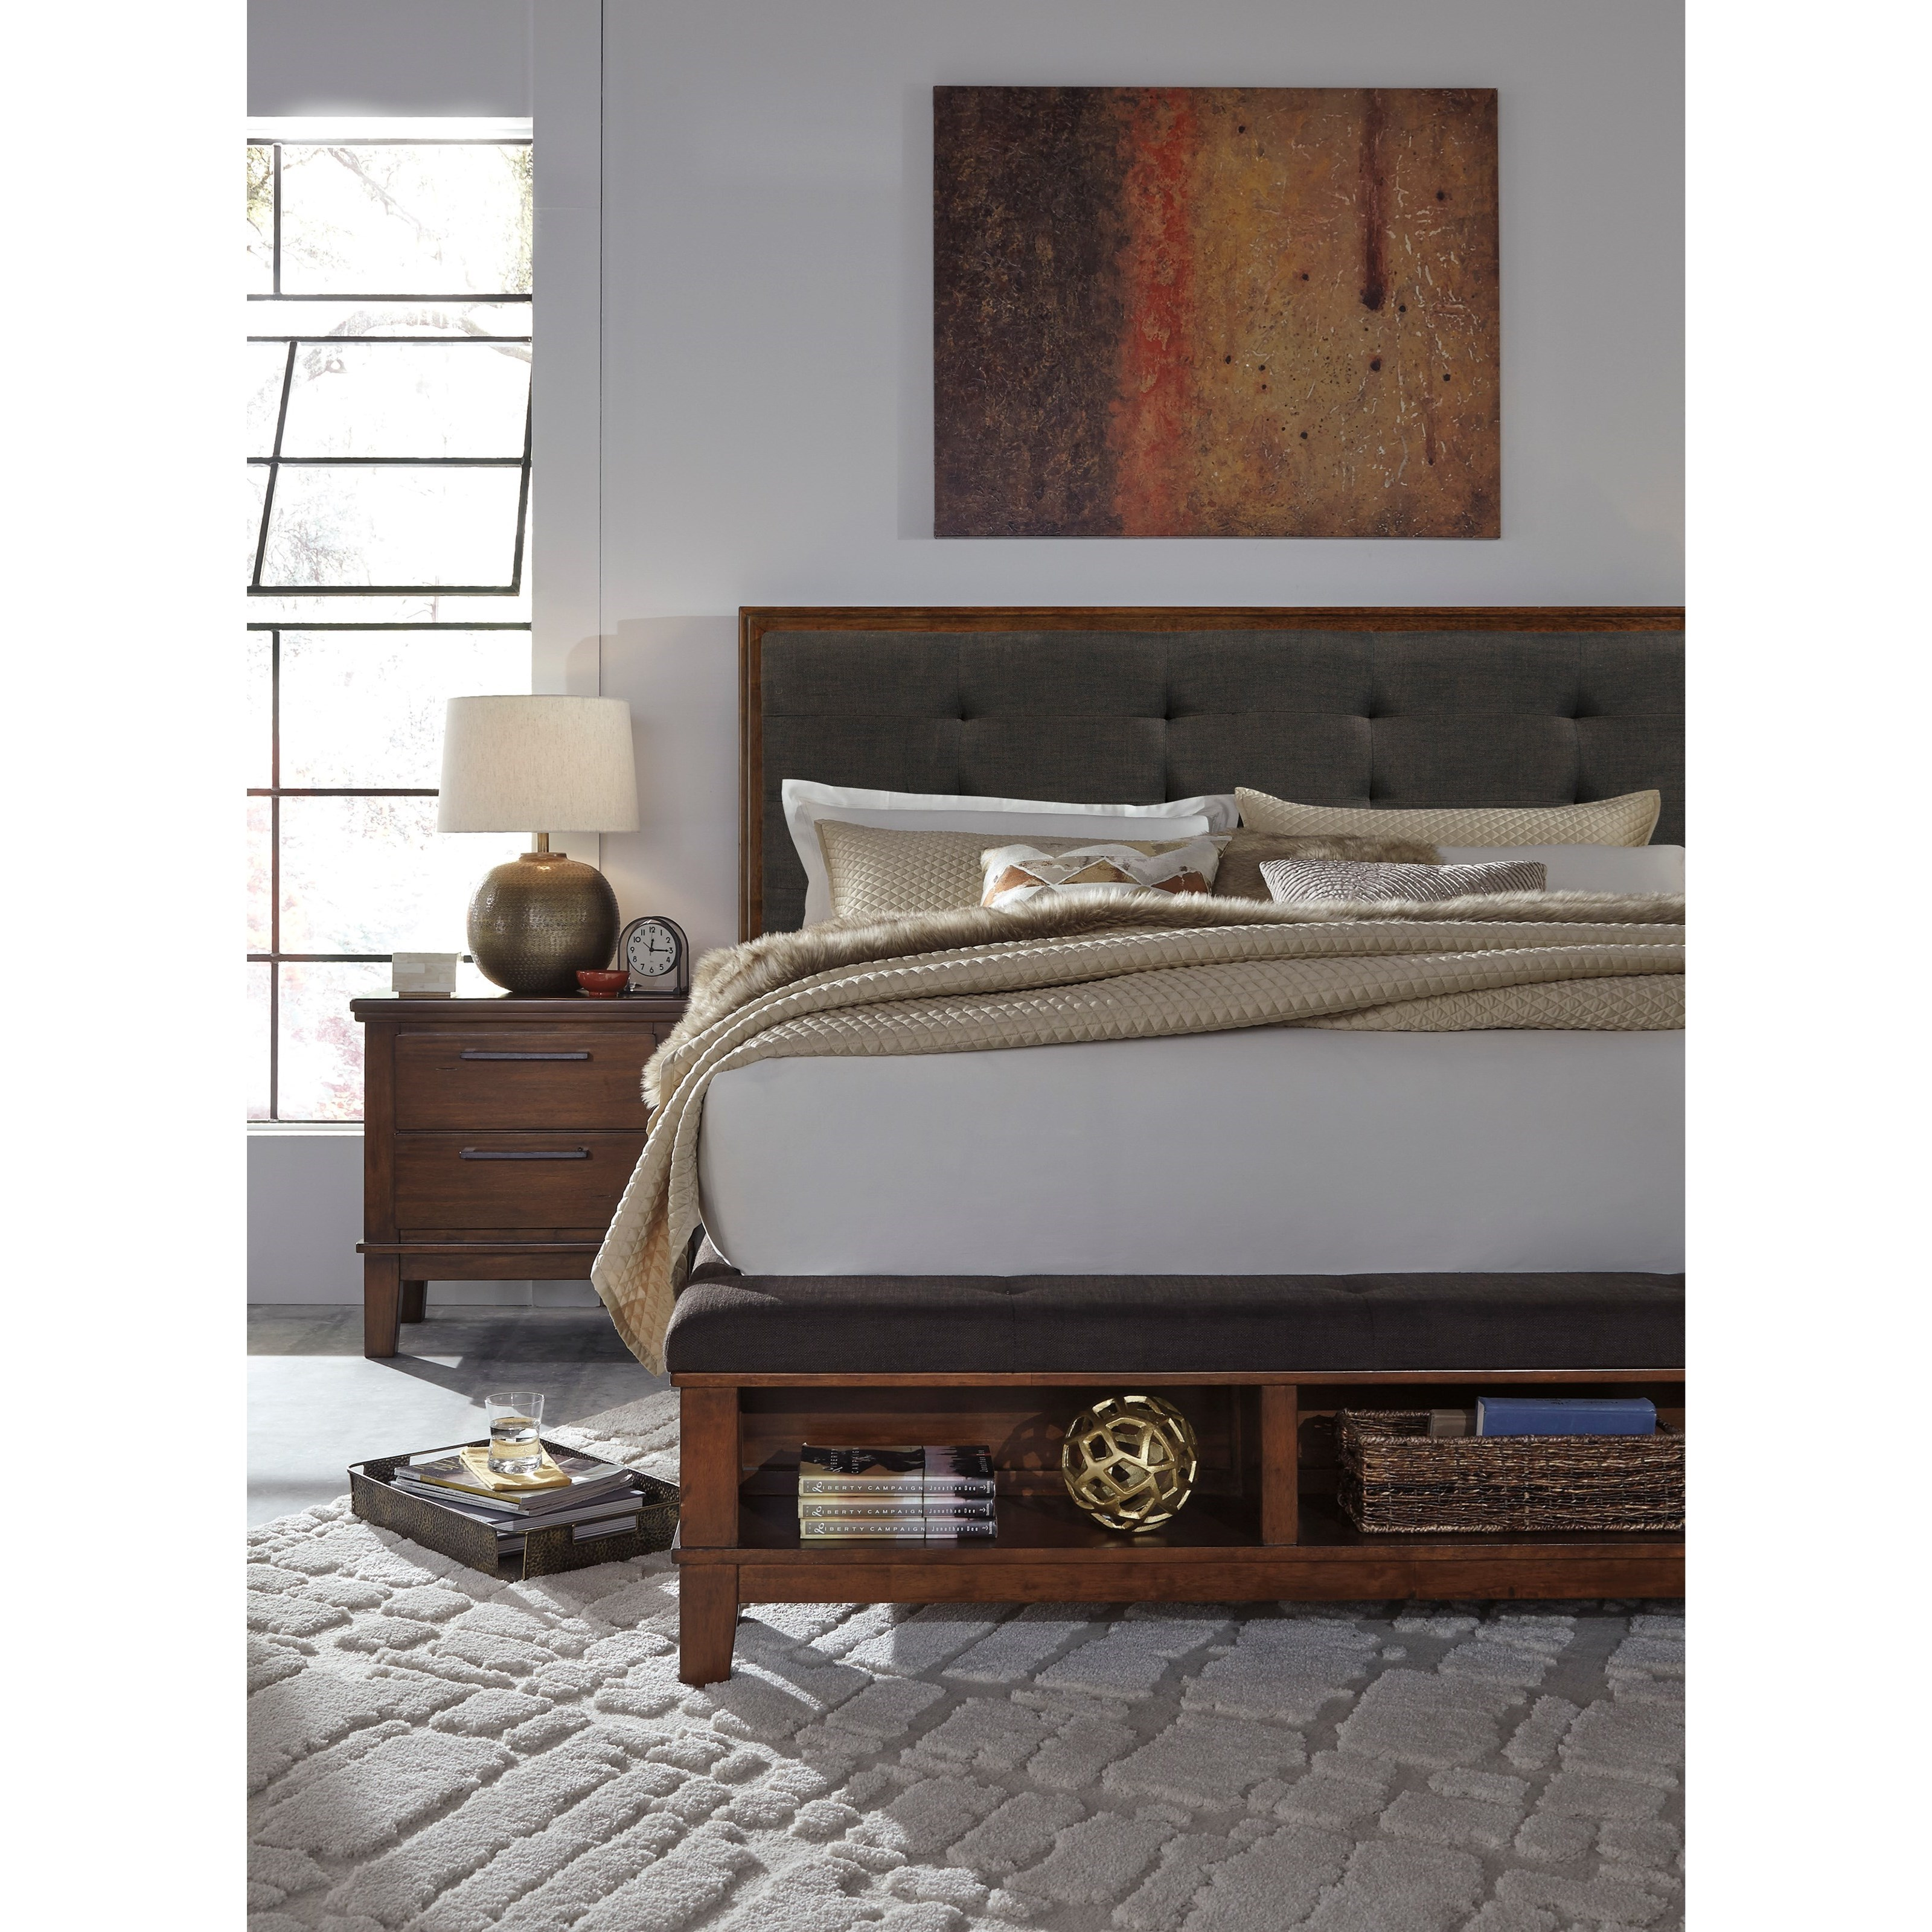 Queen upholstered bed with bench storage footboard by signature design by ashley wolf and for Bedroom benches king size bed